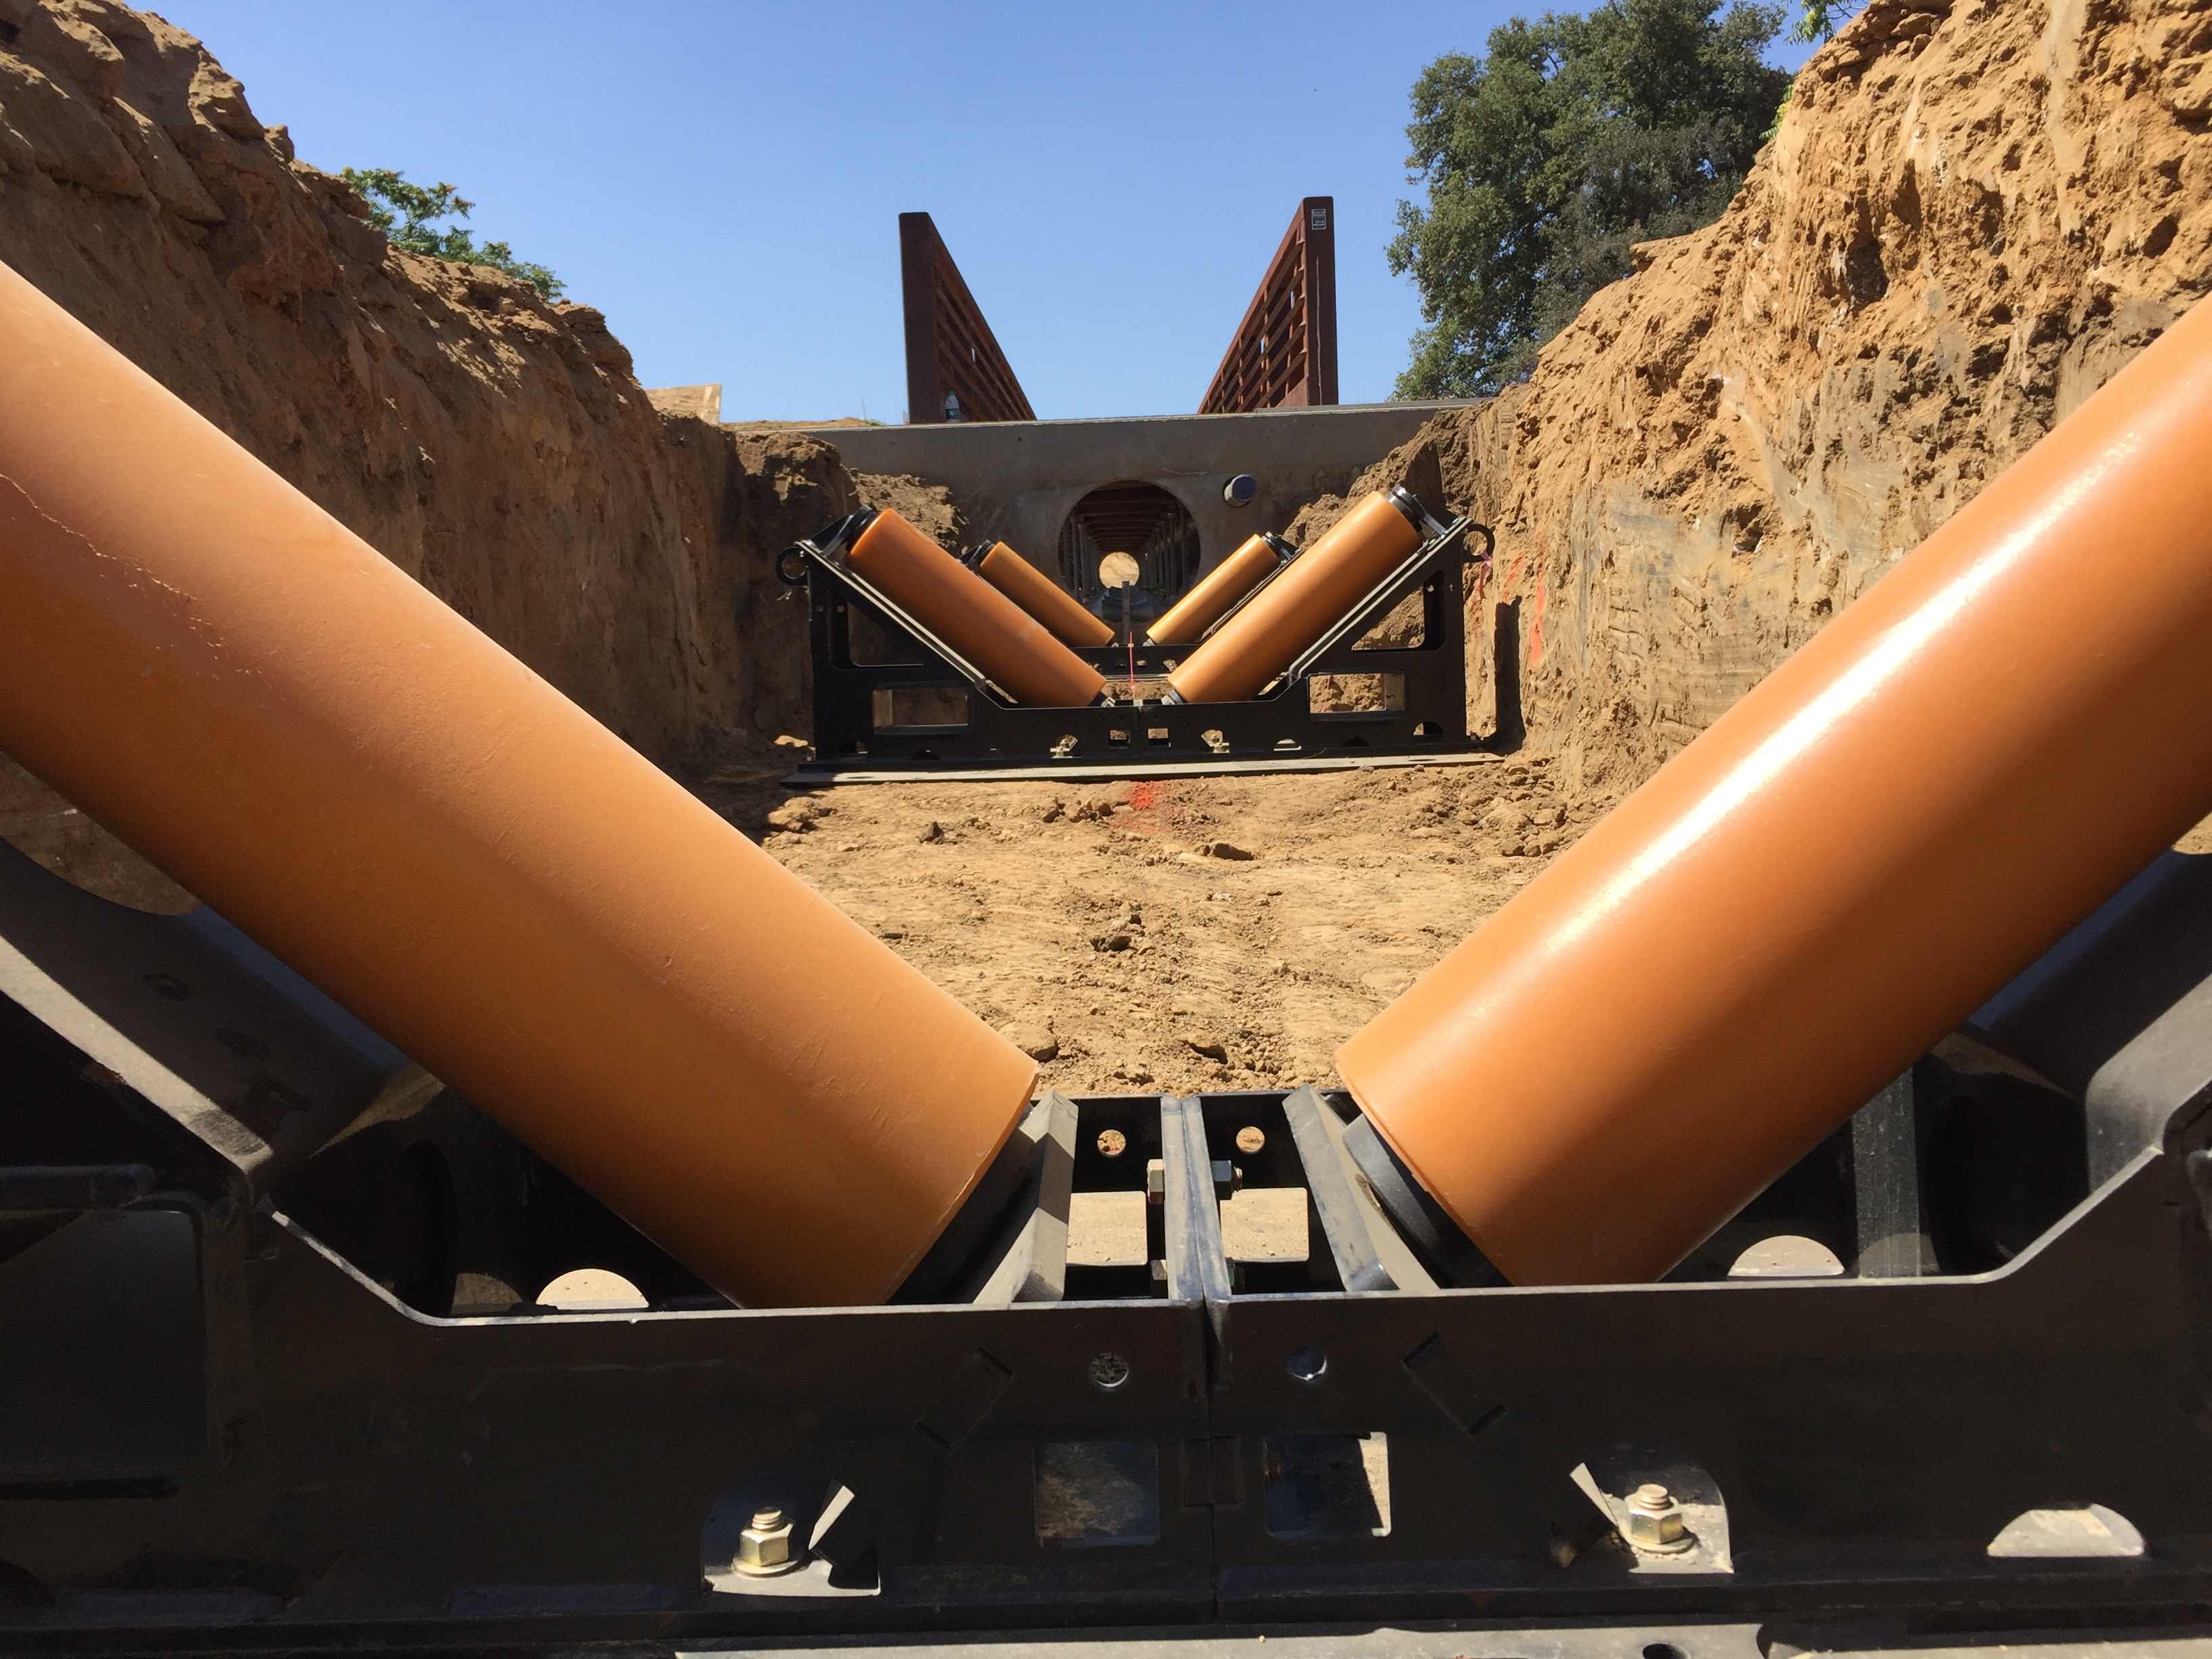 5-Ton Pipeline Rollers (Pipe Rollers or Pipe Roller Supports